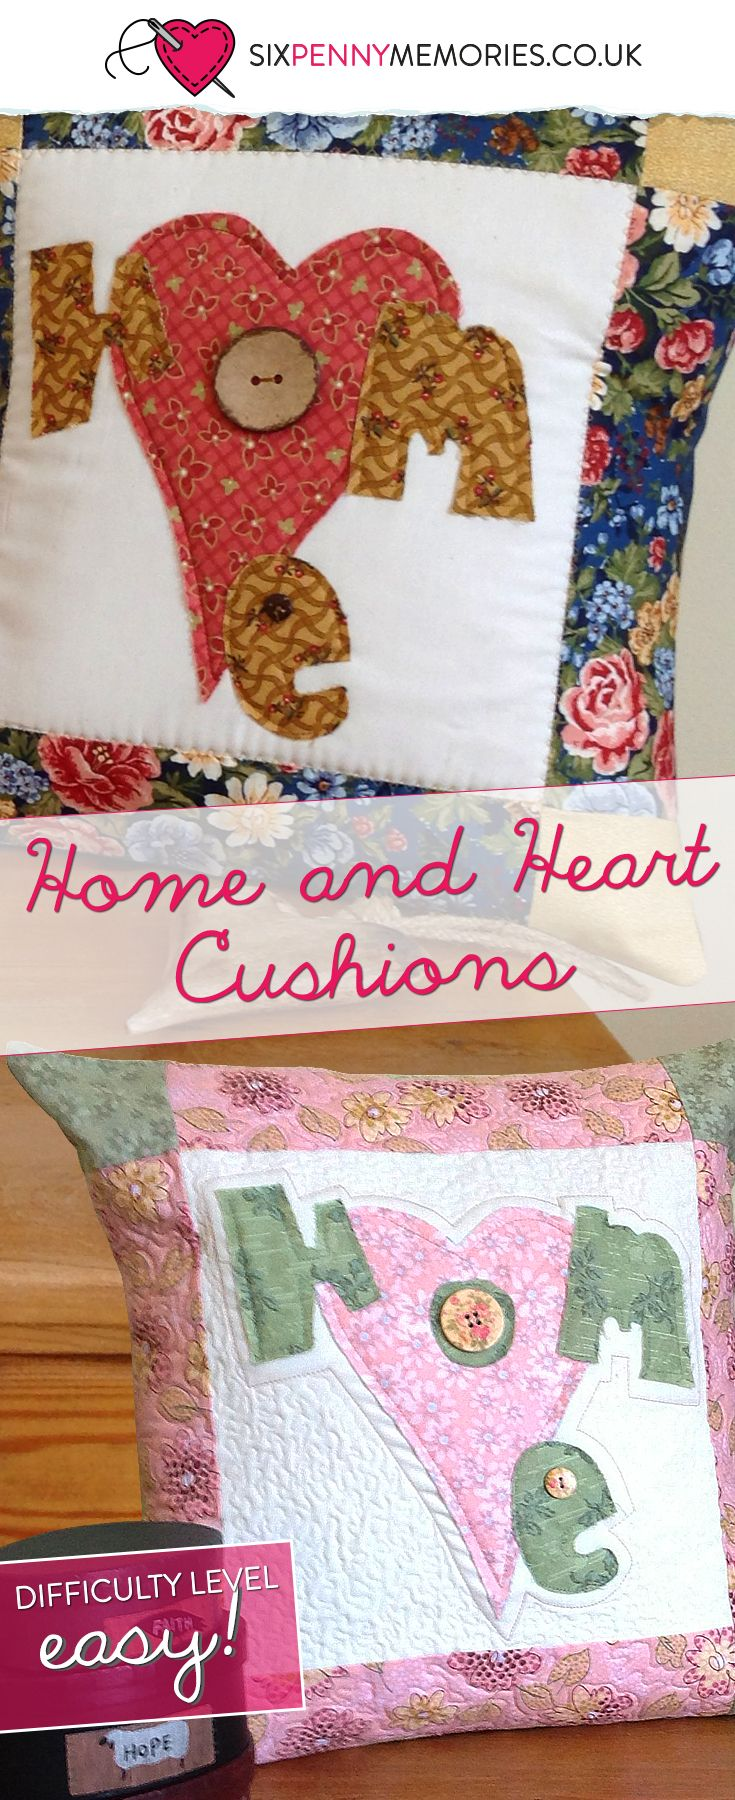 The Home and Heart cushion is right on trend in home décor